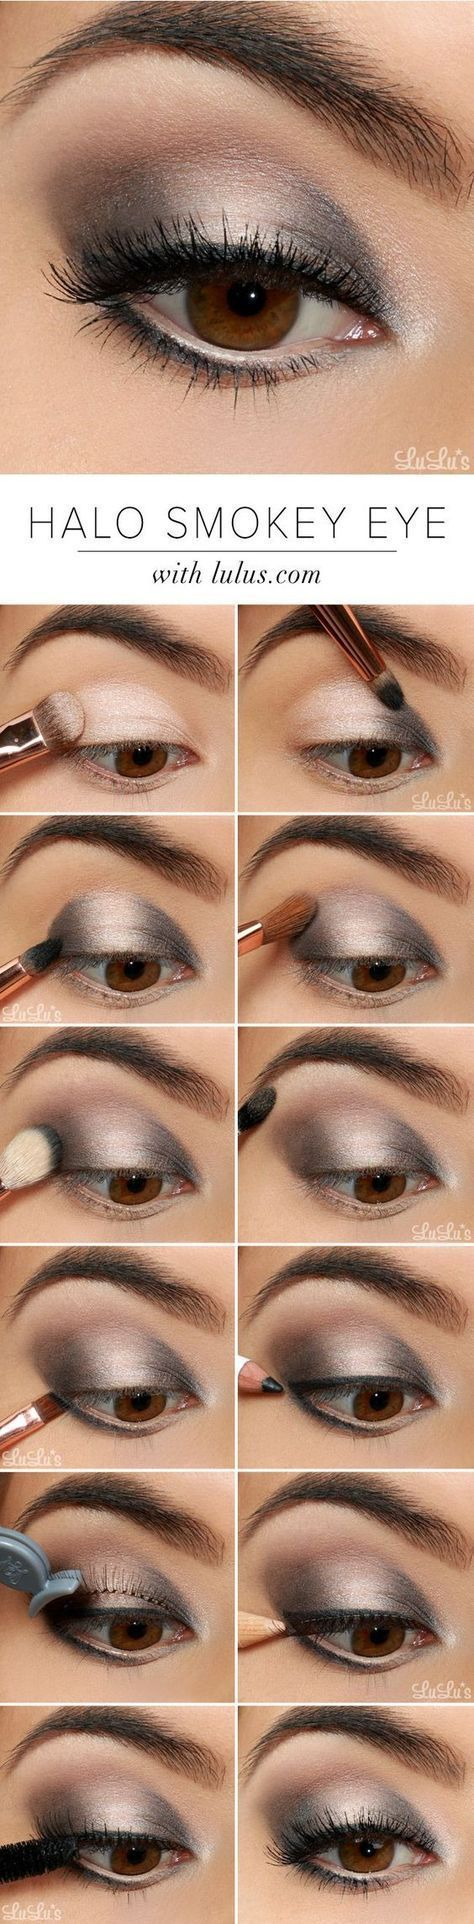 quick u easy step by step smokey eye makeup tutorials eye